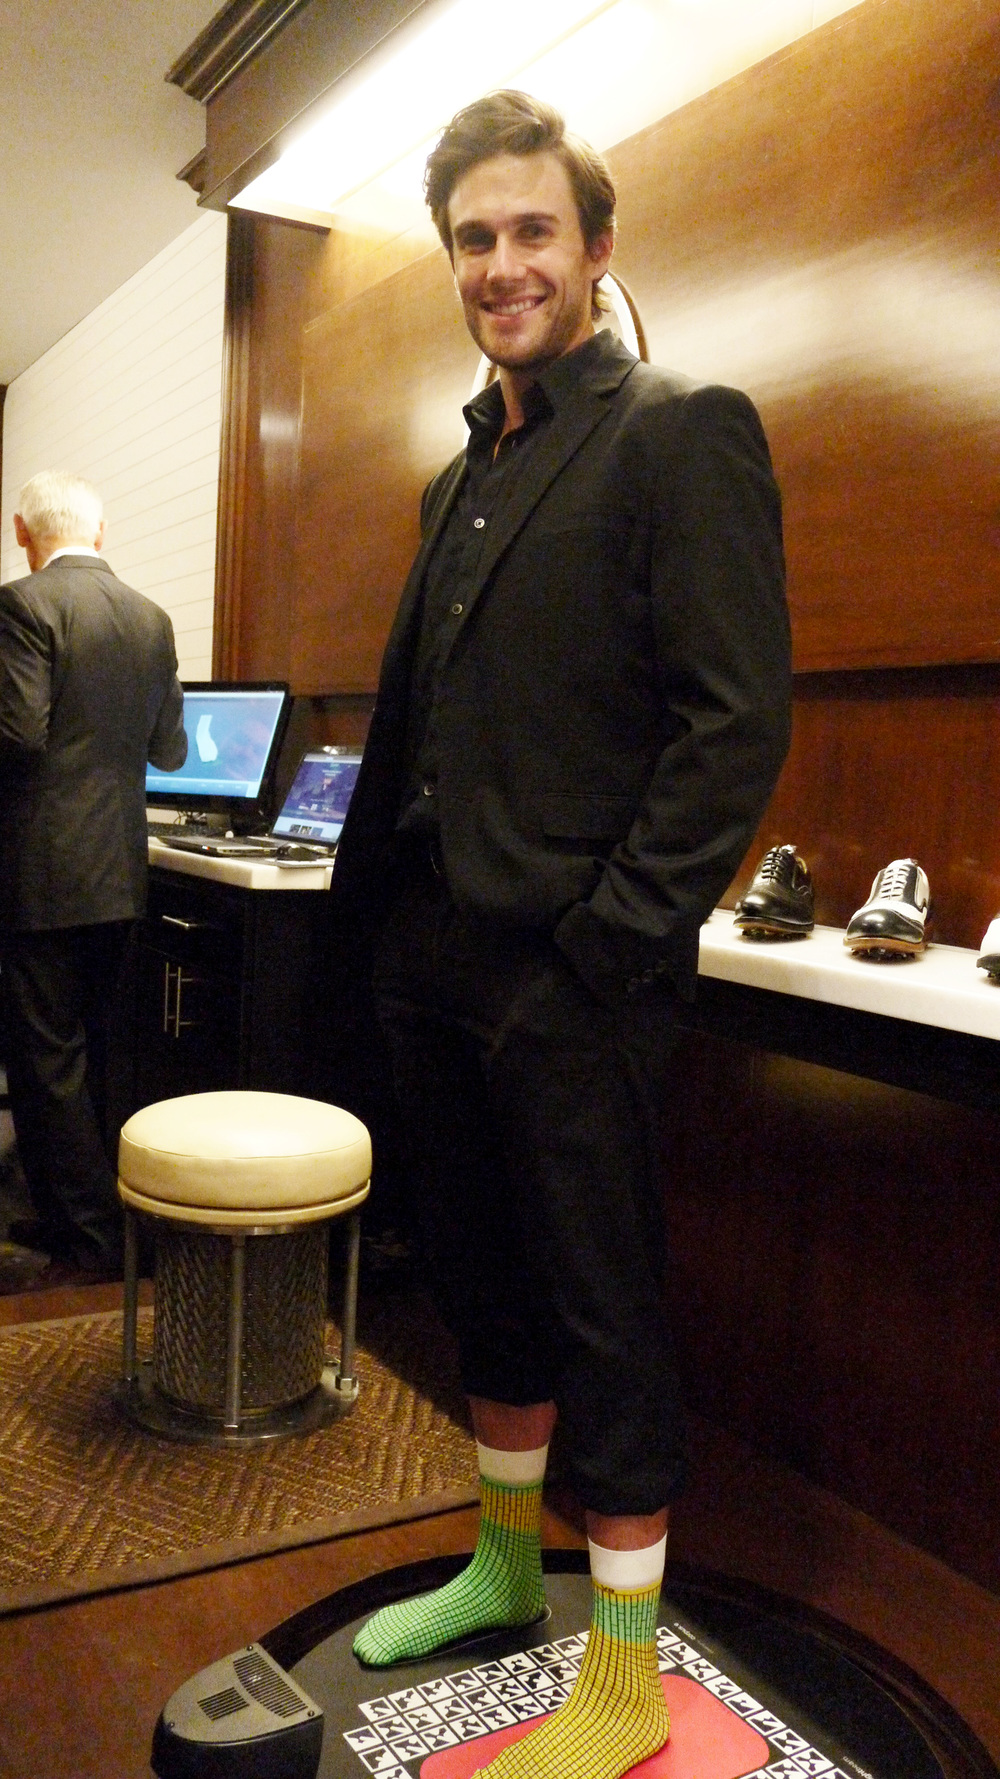 Say hello to Tom! He was demoing the 3D foot scan (which is complimentary for all first-time visitors ).